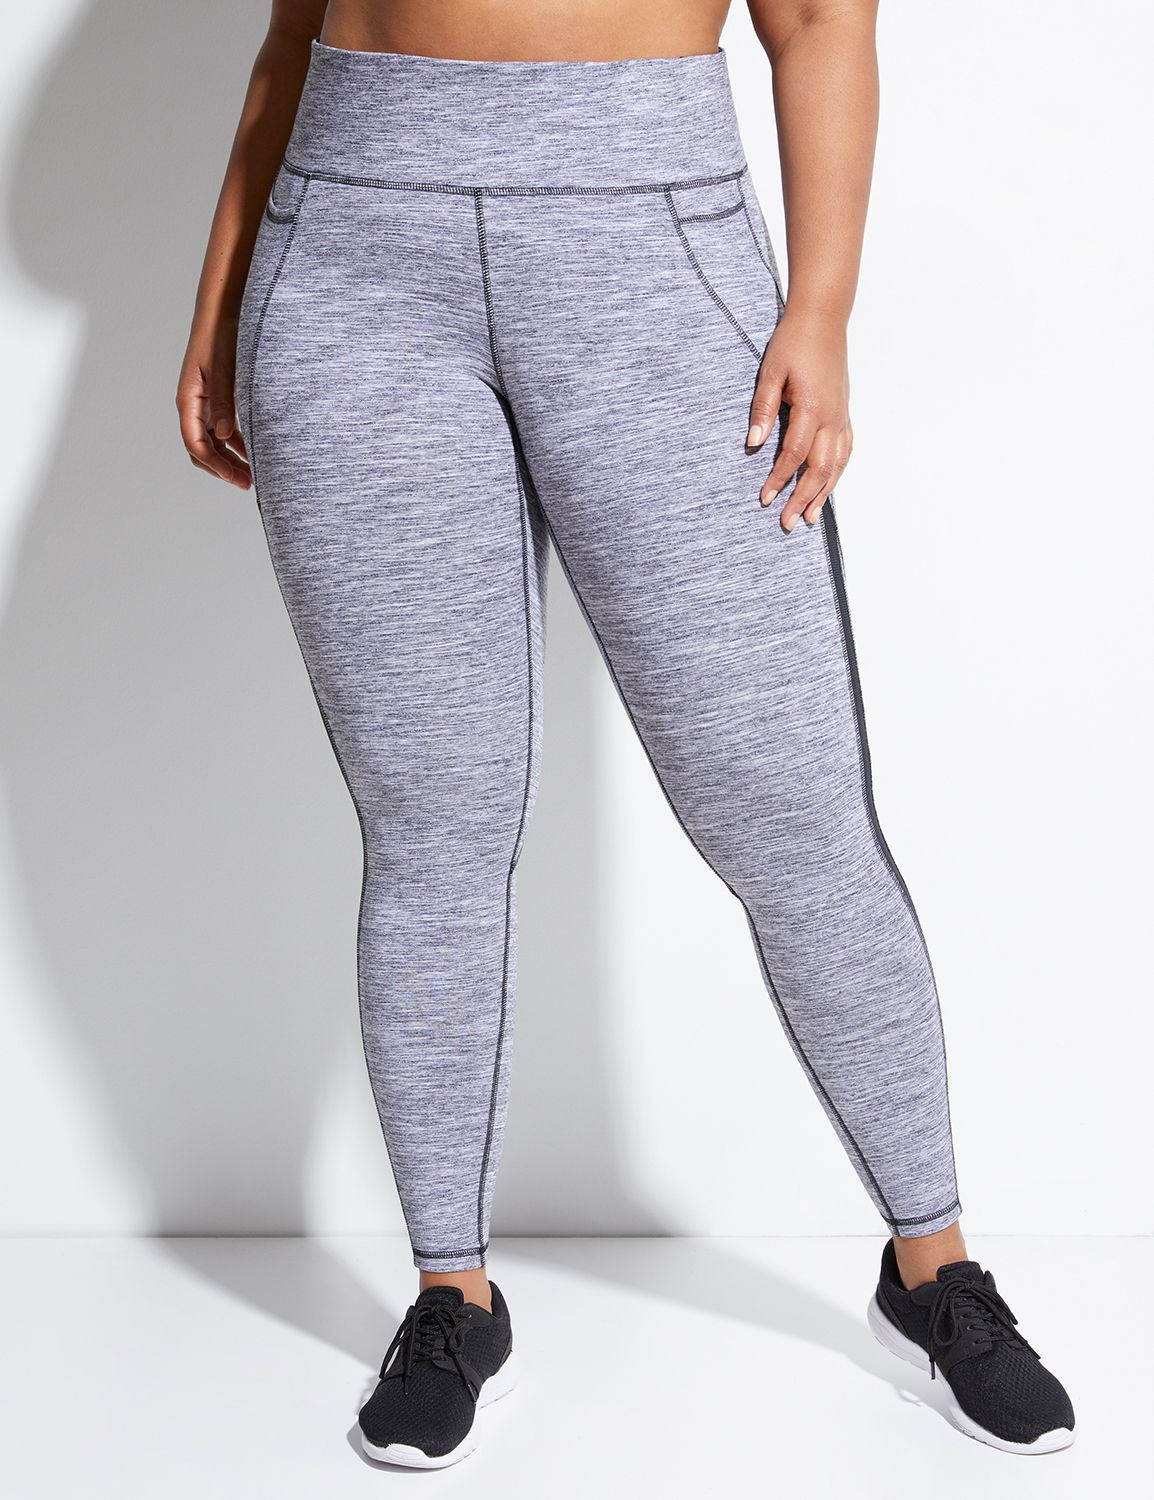 Lane Bryant Womens Active Legging With Mesh Inset 14/16 Neutral